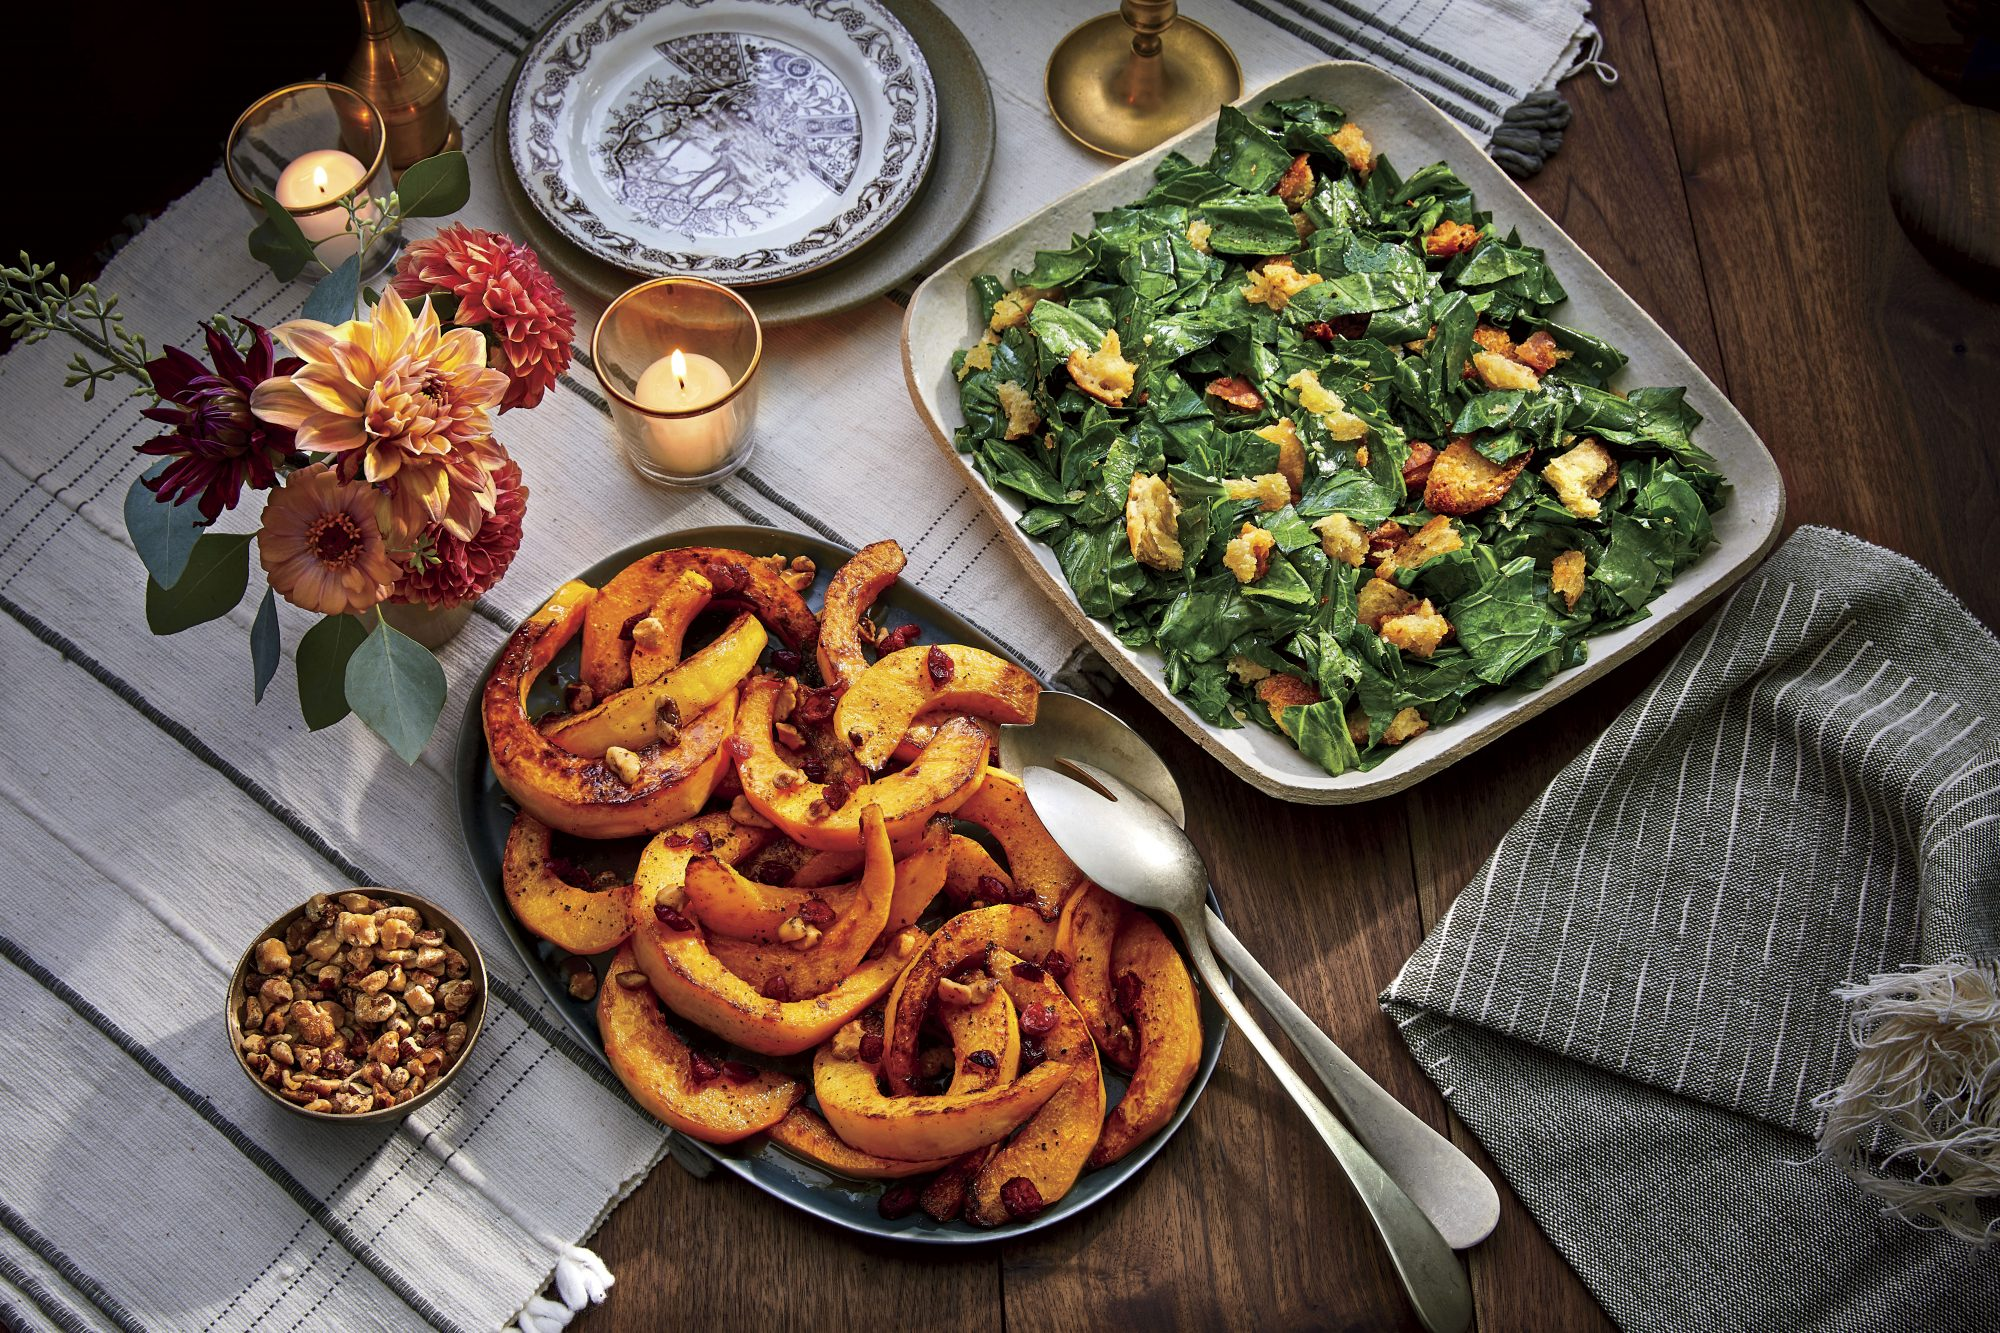 Candy Roaster Squash with Sorghum, Black Walnuts, and Cranberries